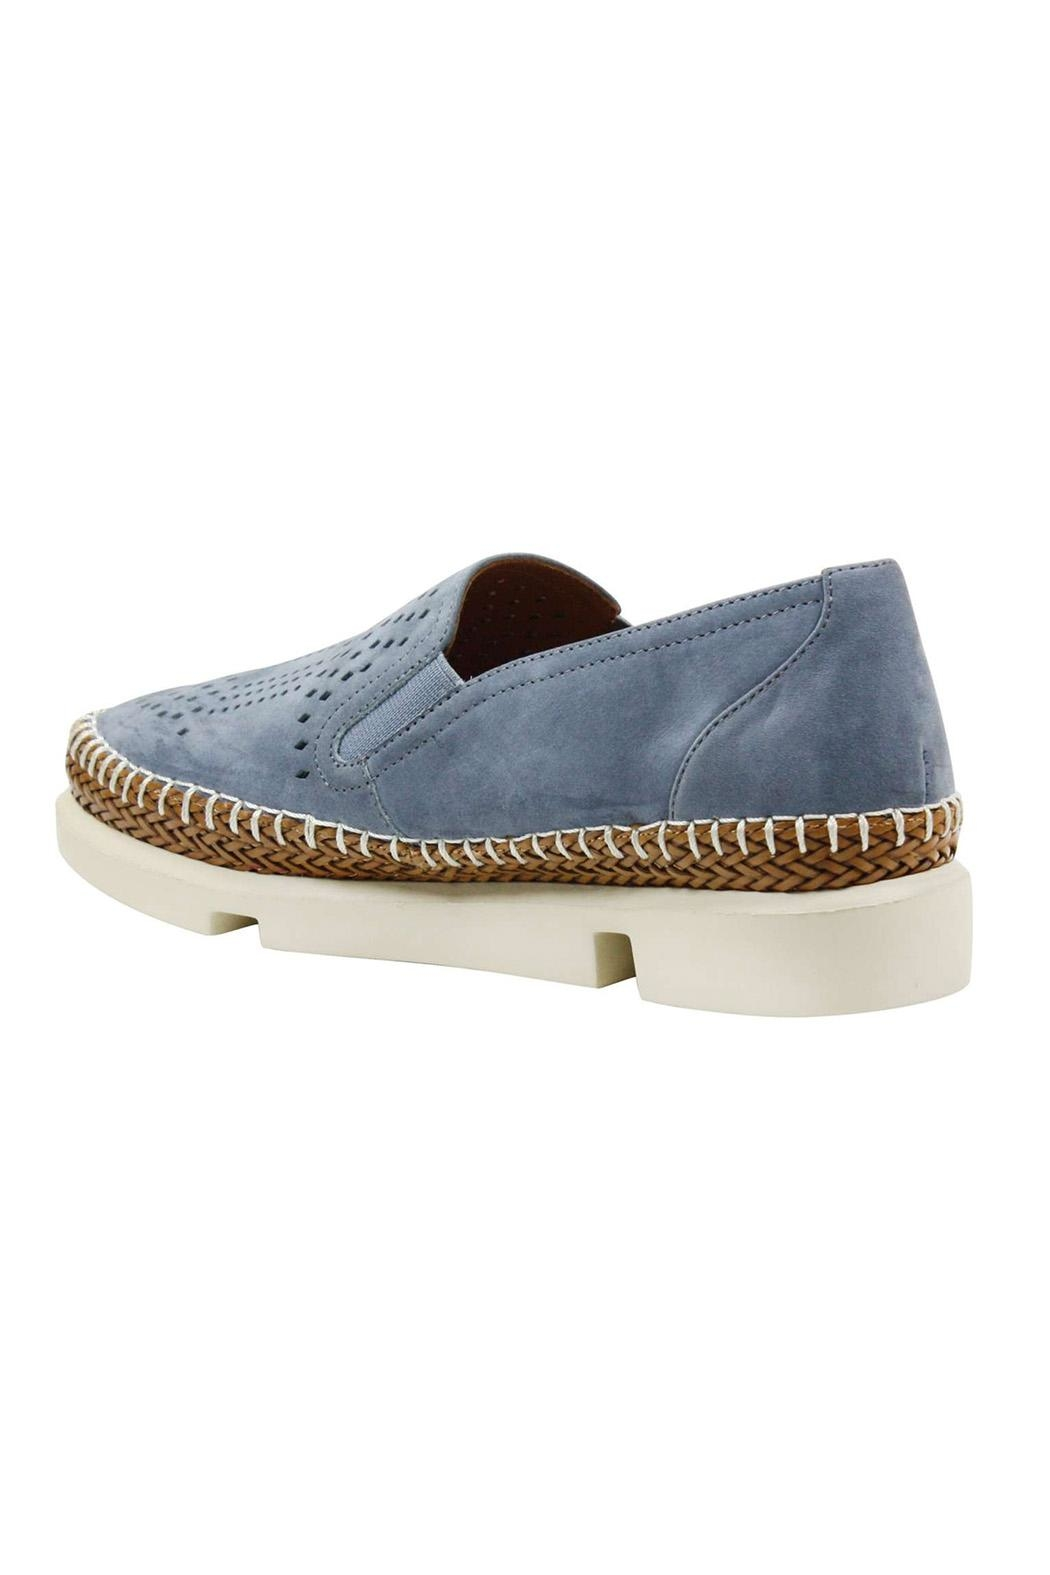 L'Amour Des Pieds Stazzema Slip-On - Front Full Image